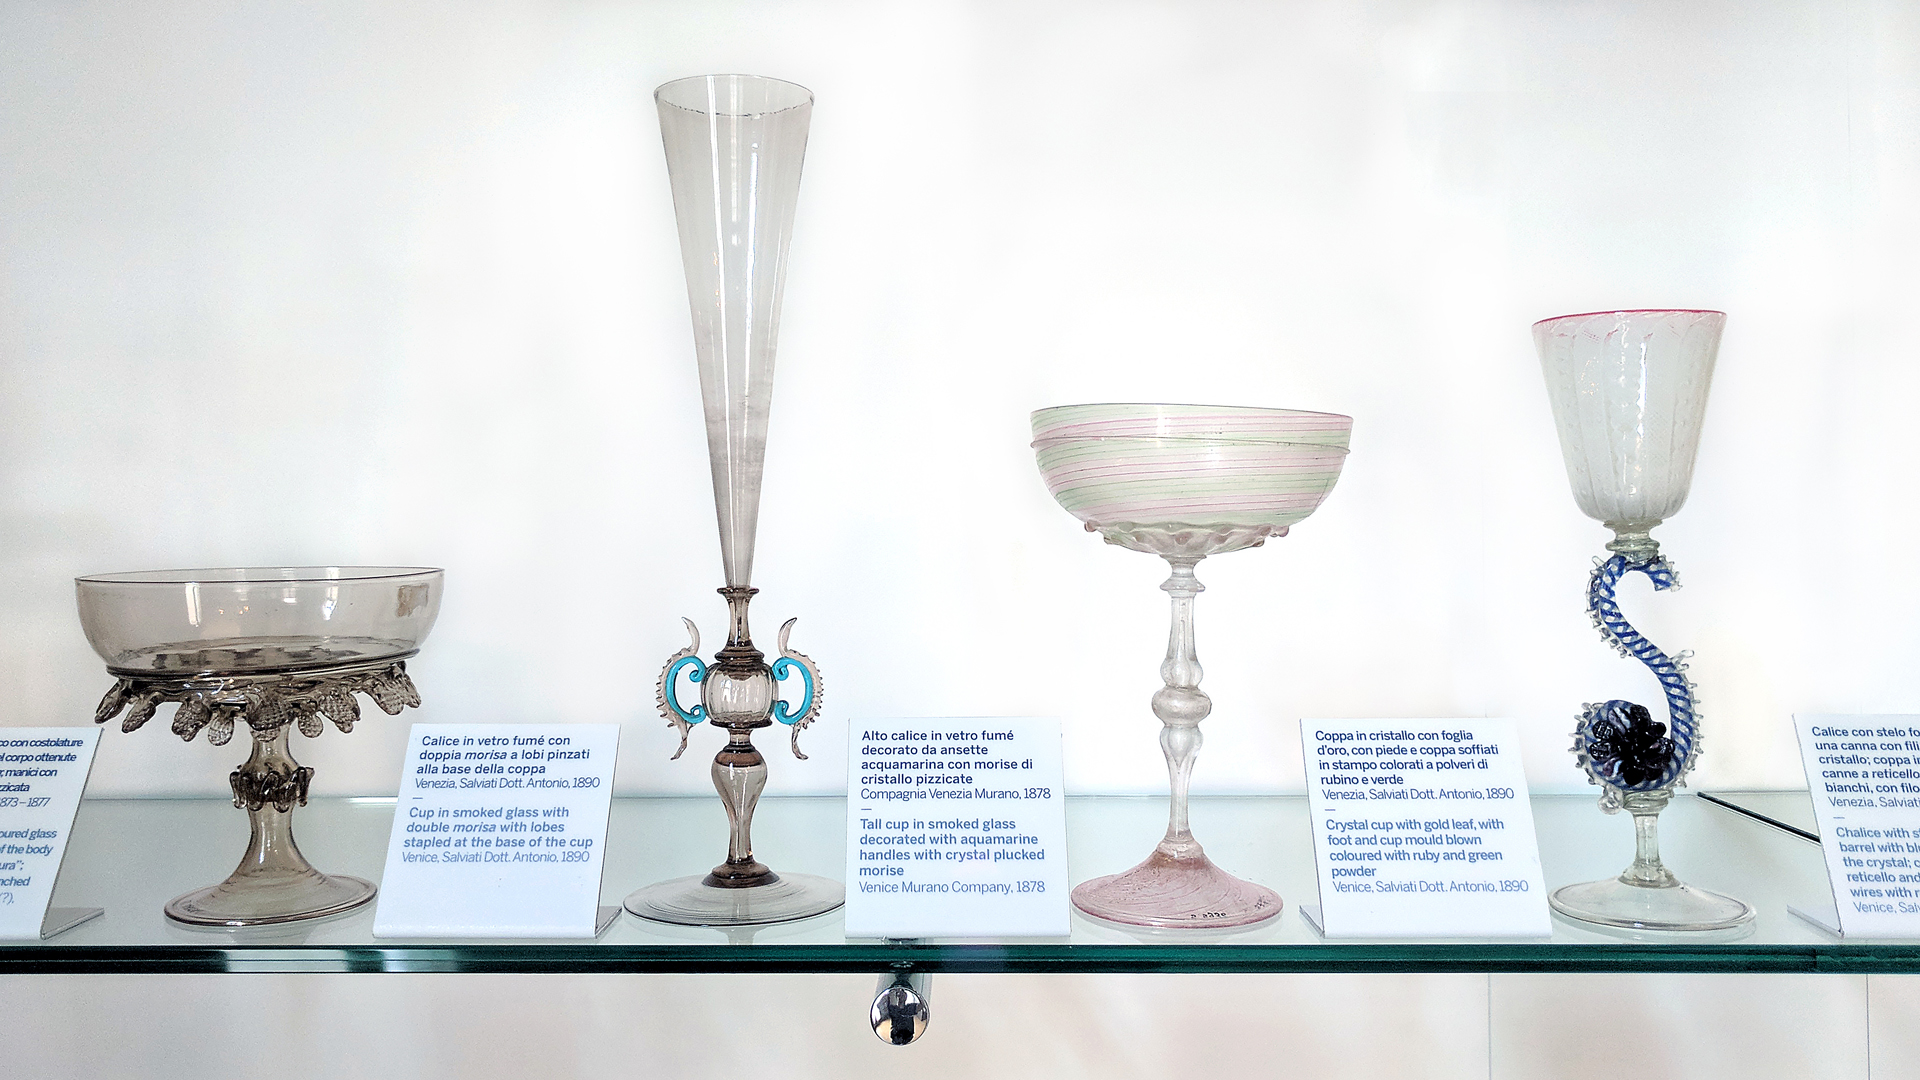 Goblets! Murano is famous for their delicate and ornamental goblet-making techniques.